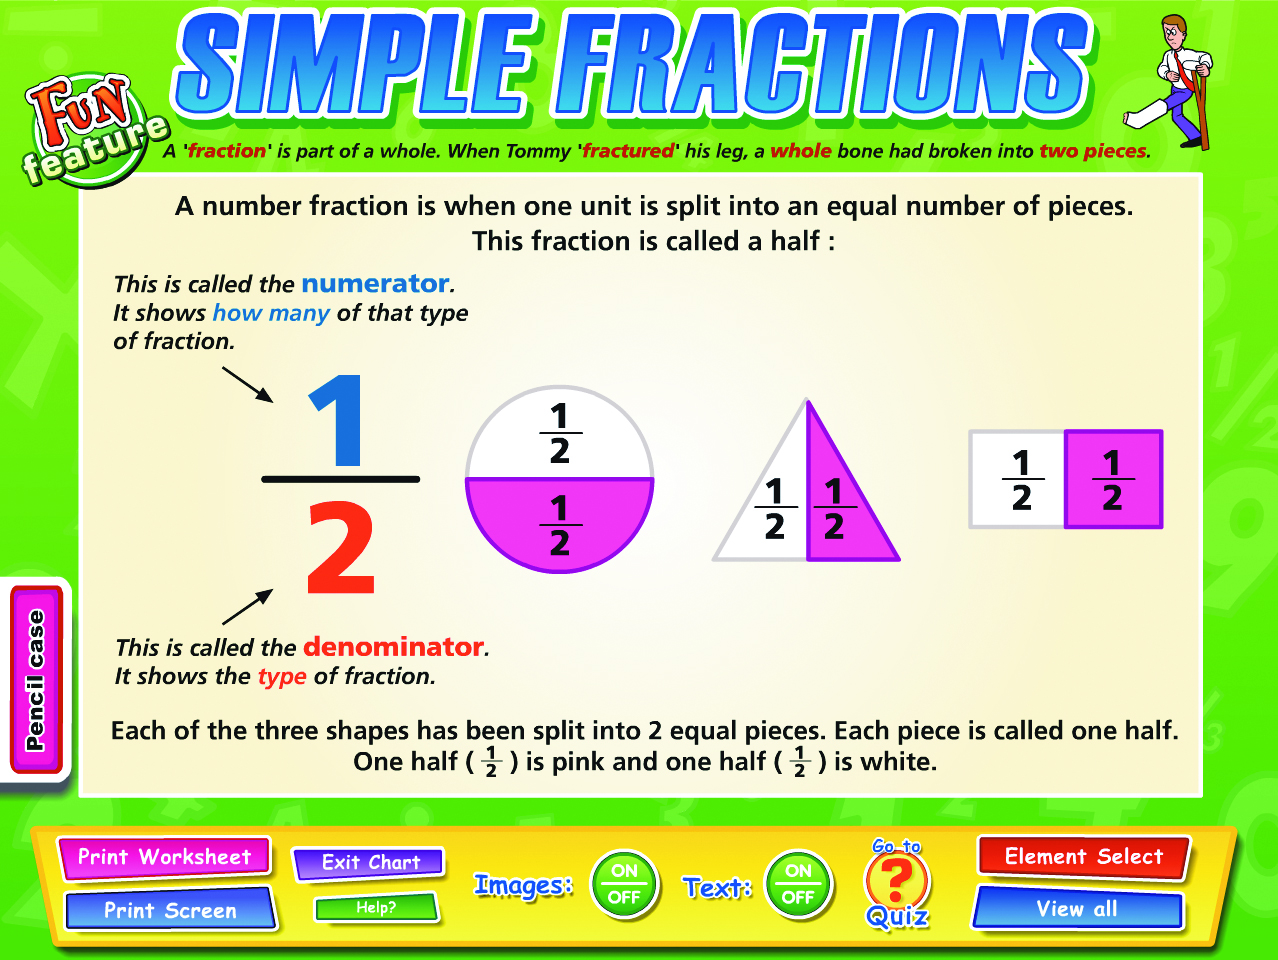 worksheet Simple Fraction fractions decimals percentages interactive whiteboard chart set system requirements 64mb ram 800x600 color display 24 bit recommended windows 98 or highermac os 9 0 4 above com